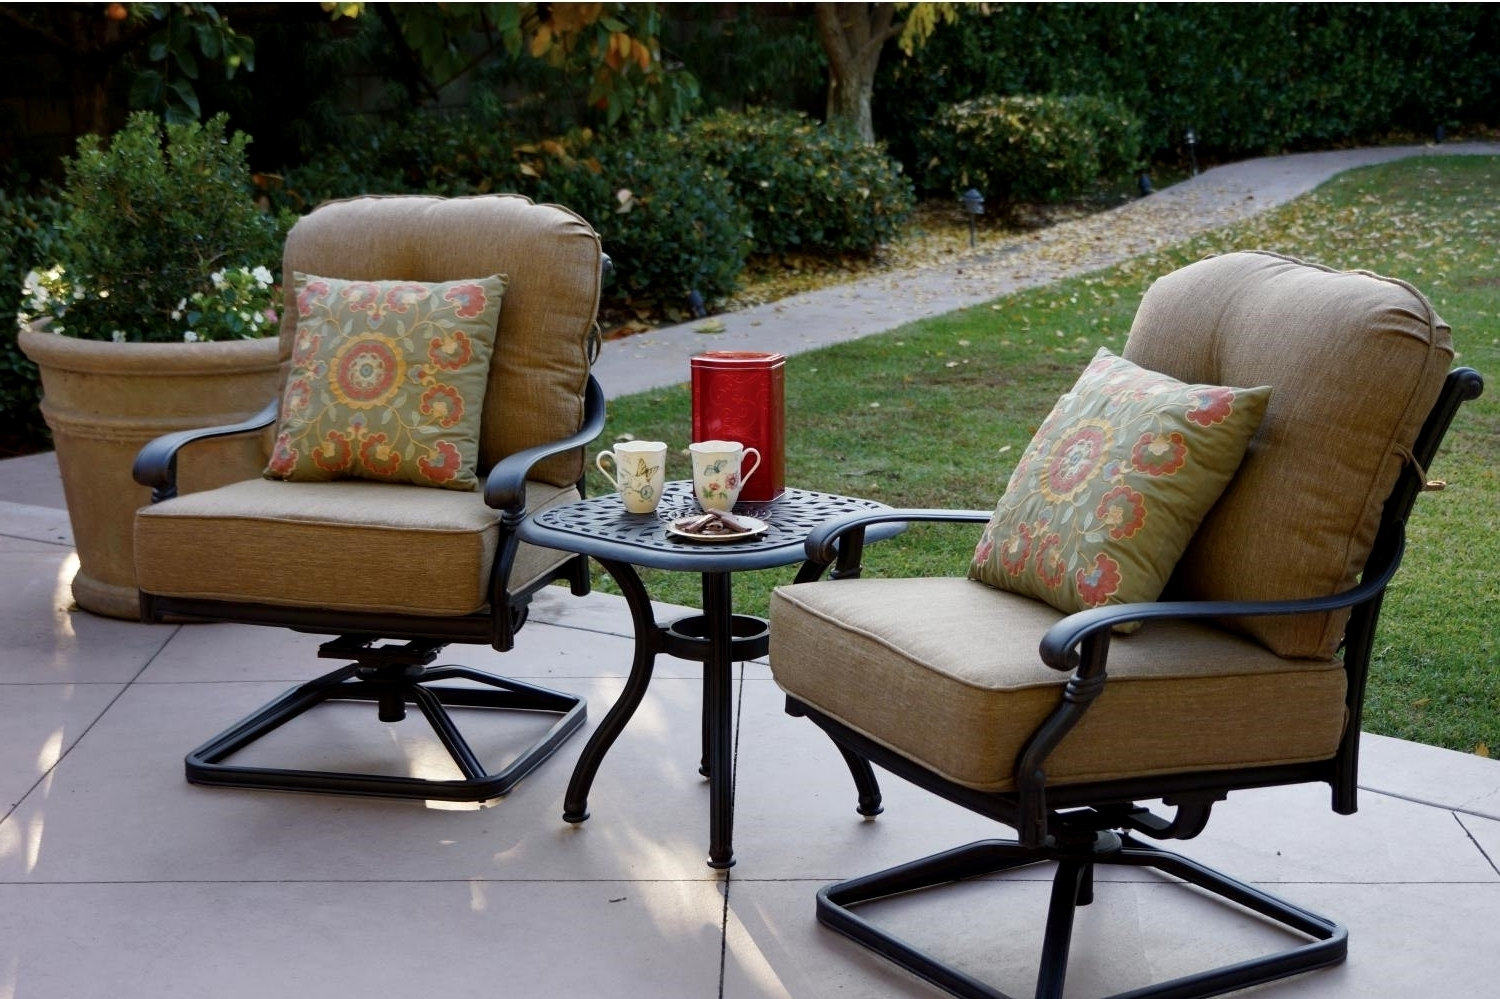 Patio Rocking Chairs And Table Throughout Trendy Patio Furniture Cast Aluminum Deep Seating Rocker Set Swivel Club (View 14 of 20)